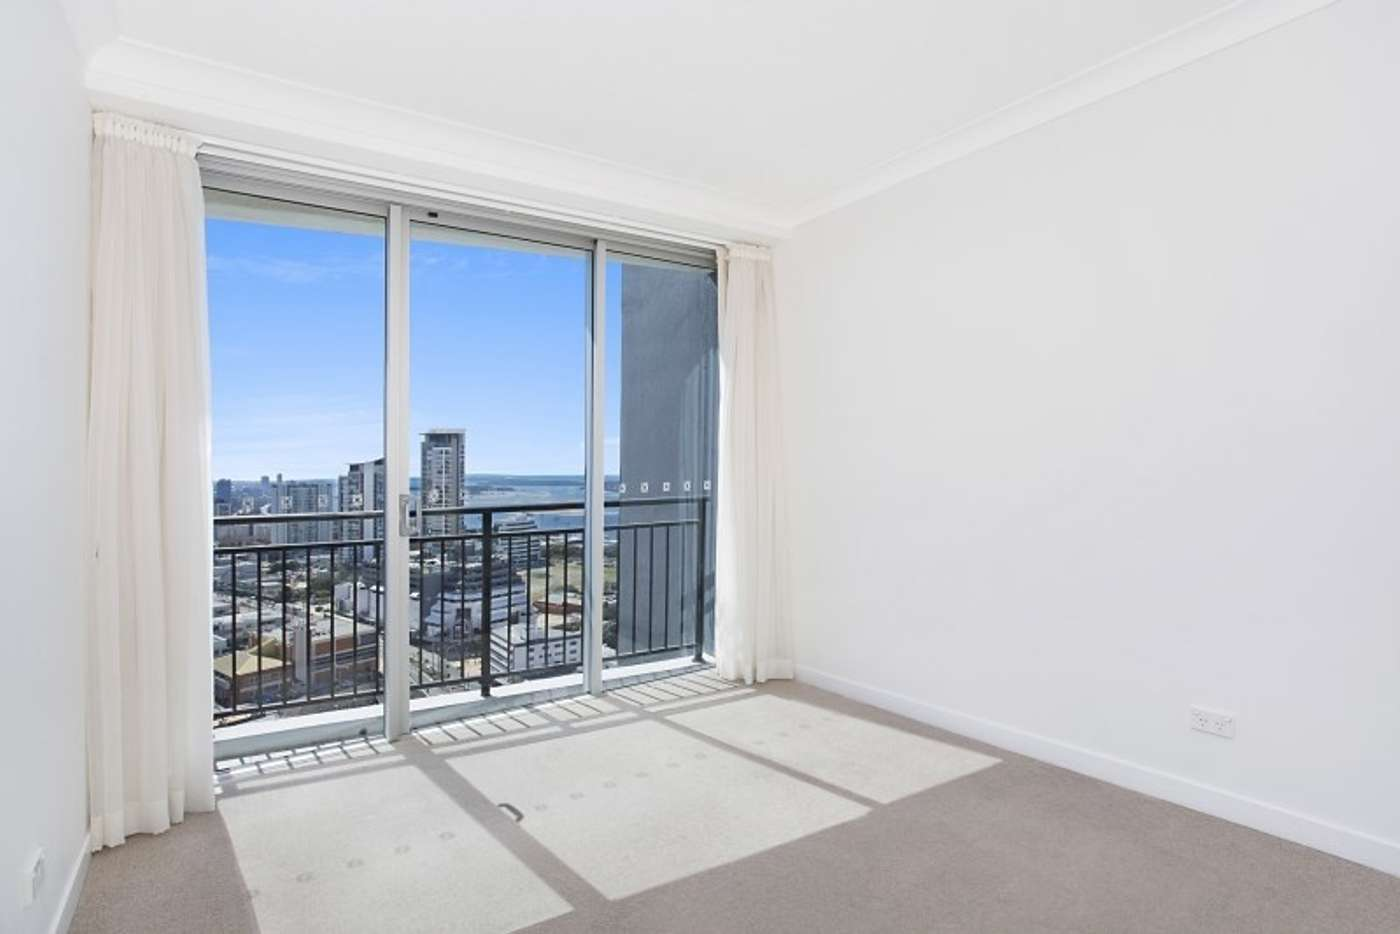 Seventh view of Homely apartment listing, 1221/56 Scarborough Street, Southport QLD 4215